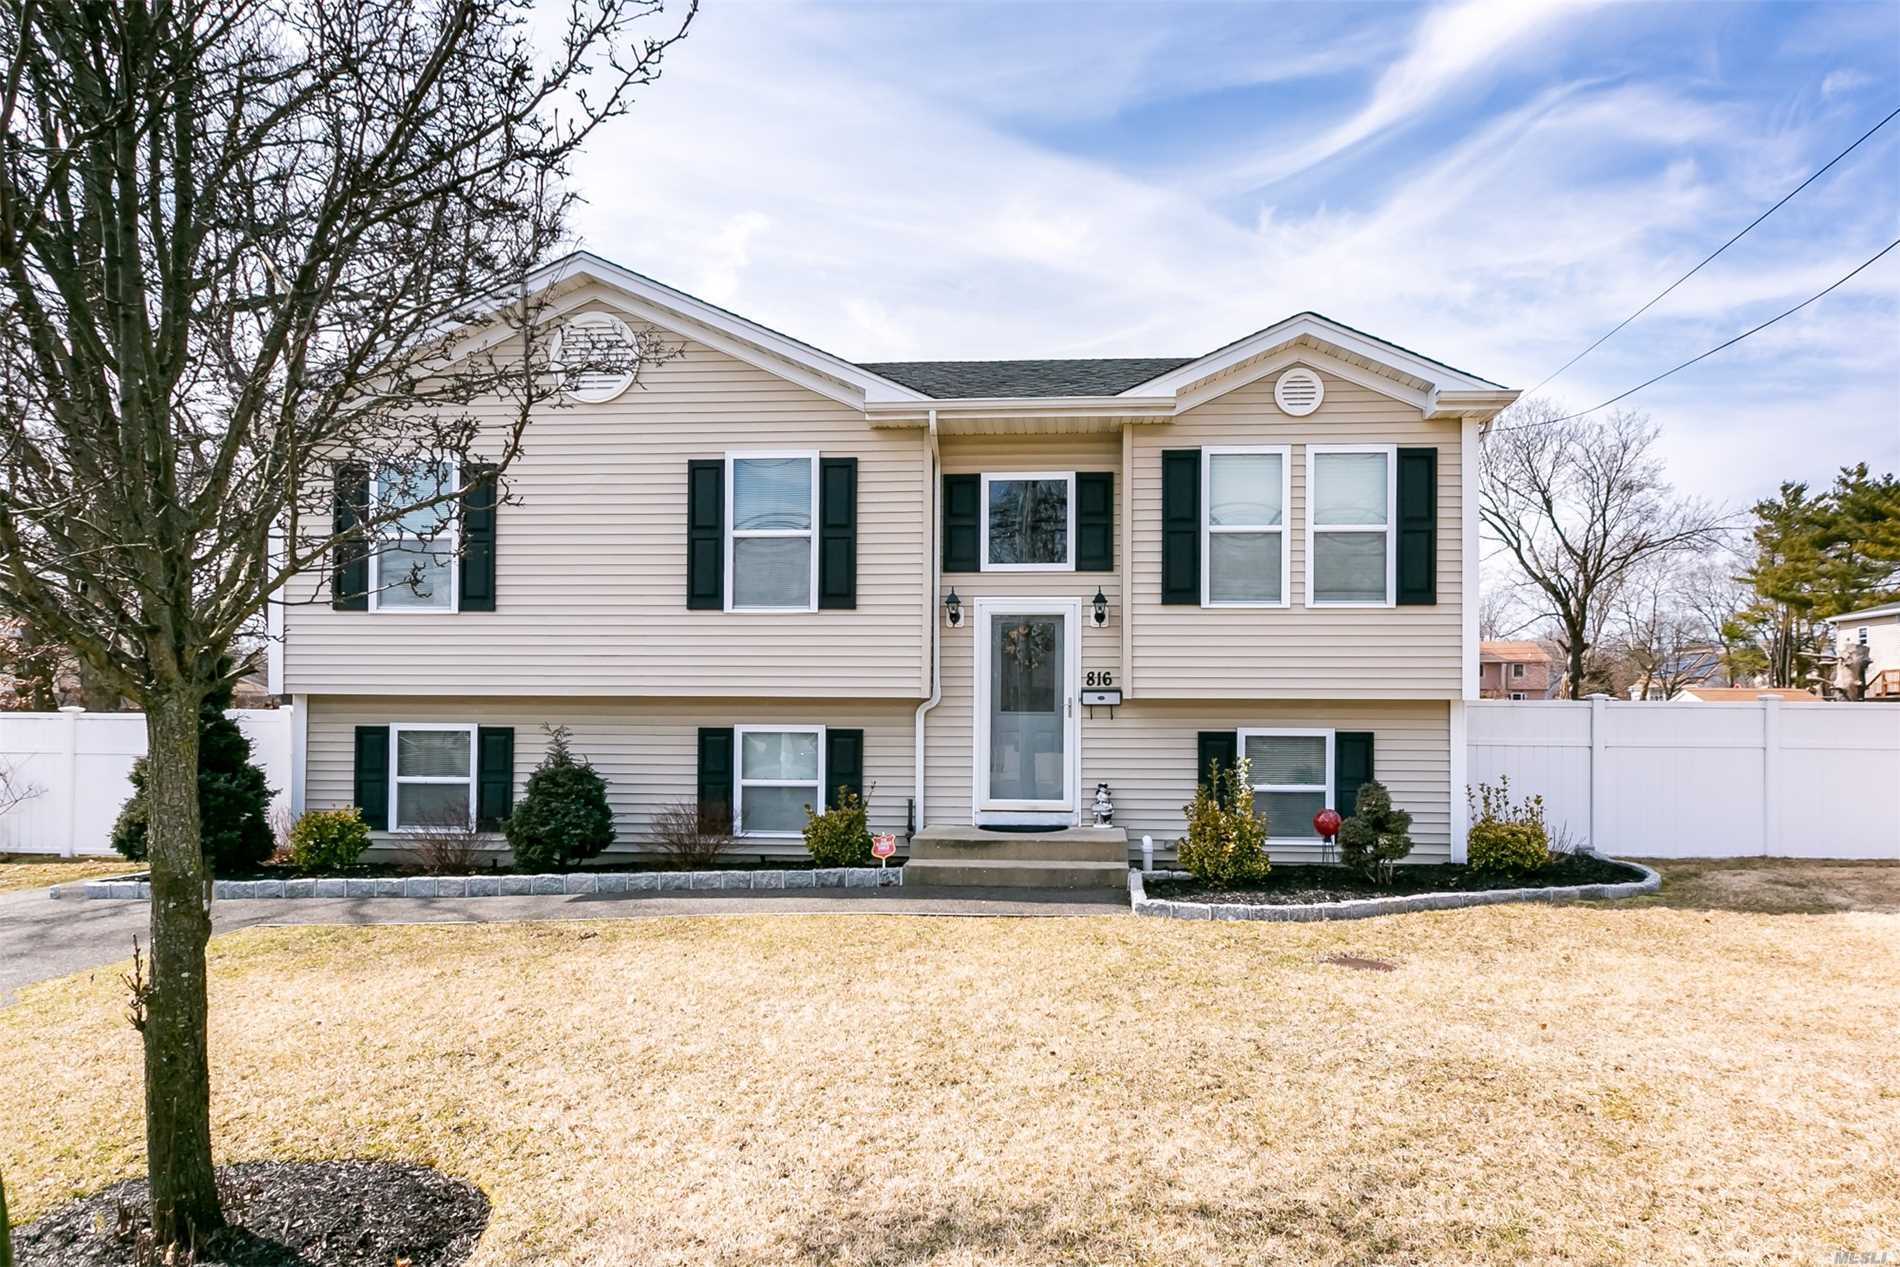 Beautiful Large 5 BR, 2 Full Bath High Ranch Built New In 2009 - This Home Features Gleaming Hardwood Floors, Open Floor Plan, Kitchen w/Granite Counter-tops & Full Dining Area, Downstairs Has High Ceilings w/Exit to Outside, MANY POSSIBILITIES- Taxes w/ STAR $8832.00